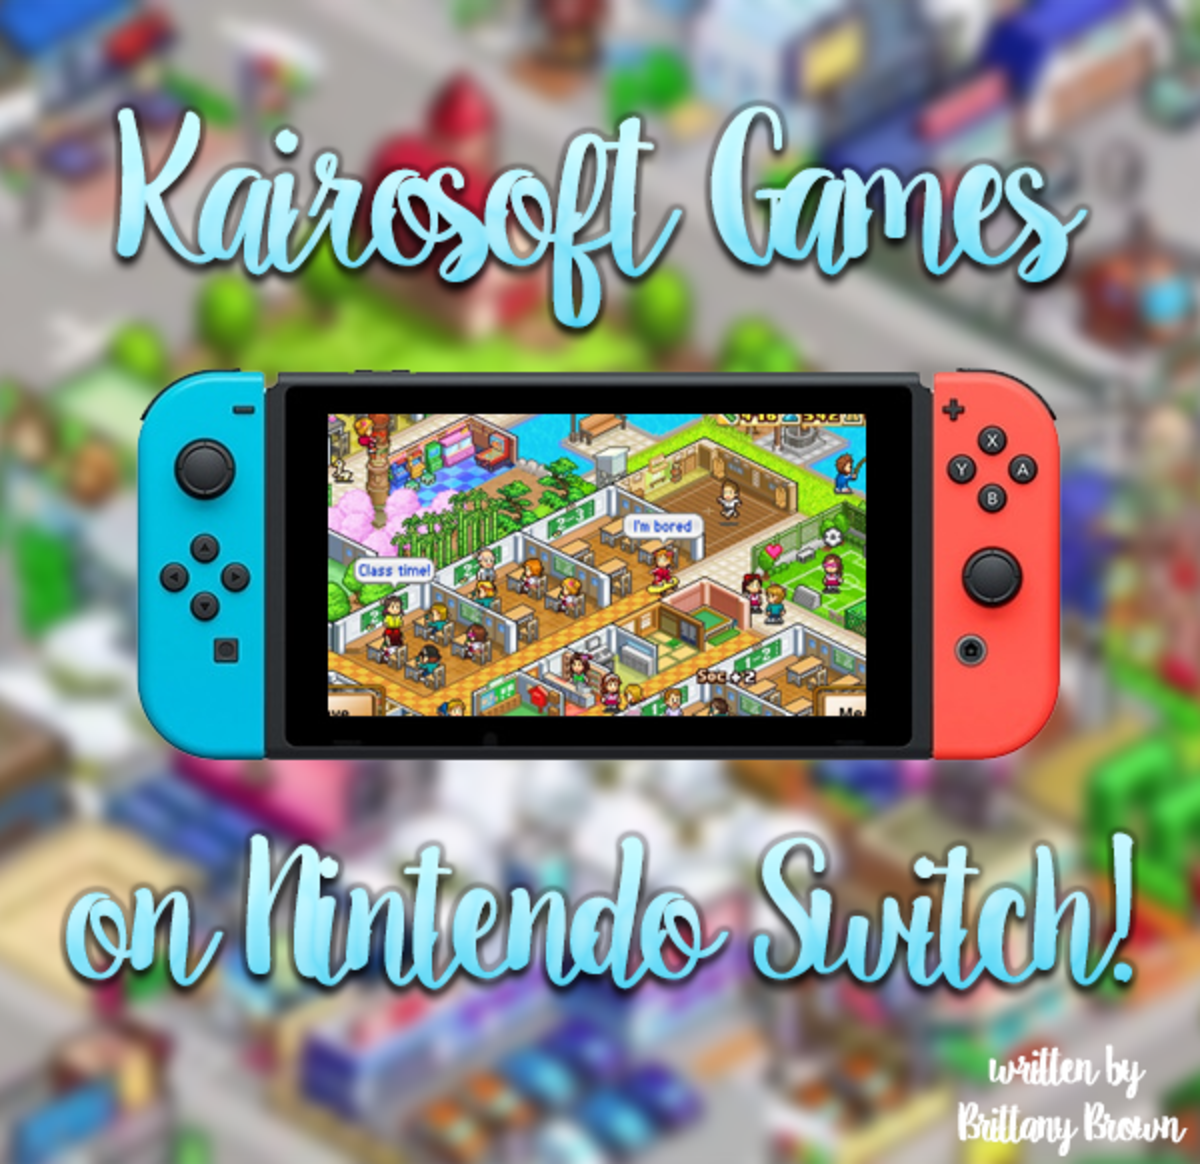 All the Kairosoft Games on Nintendo Switch!